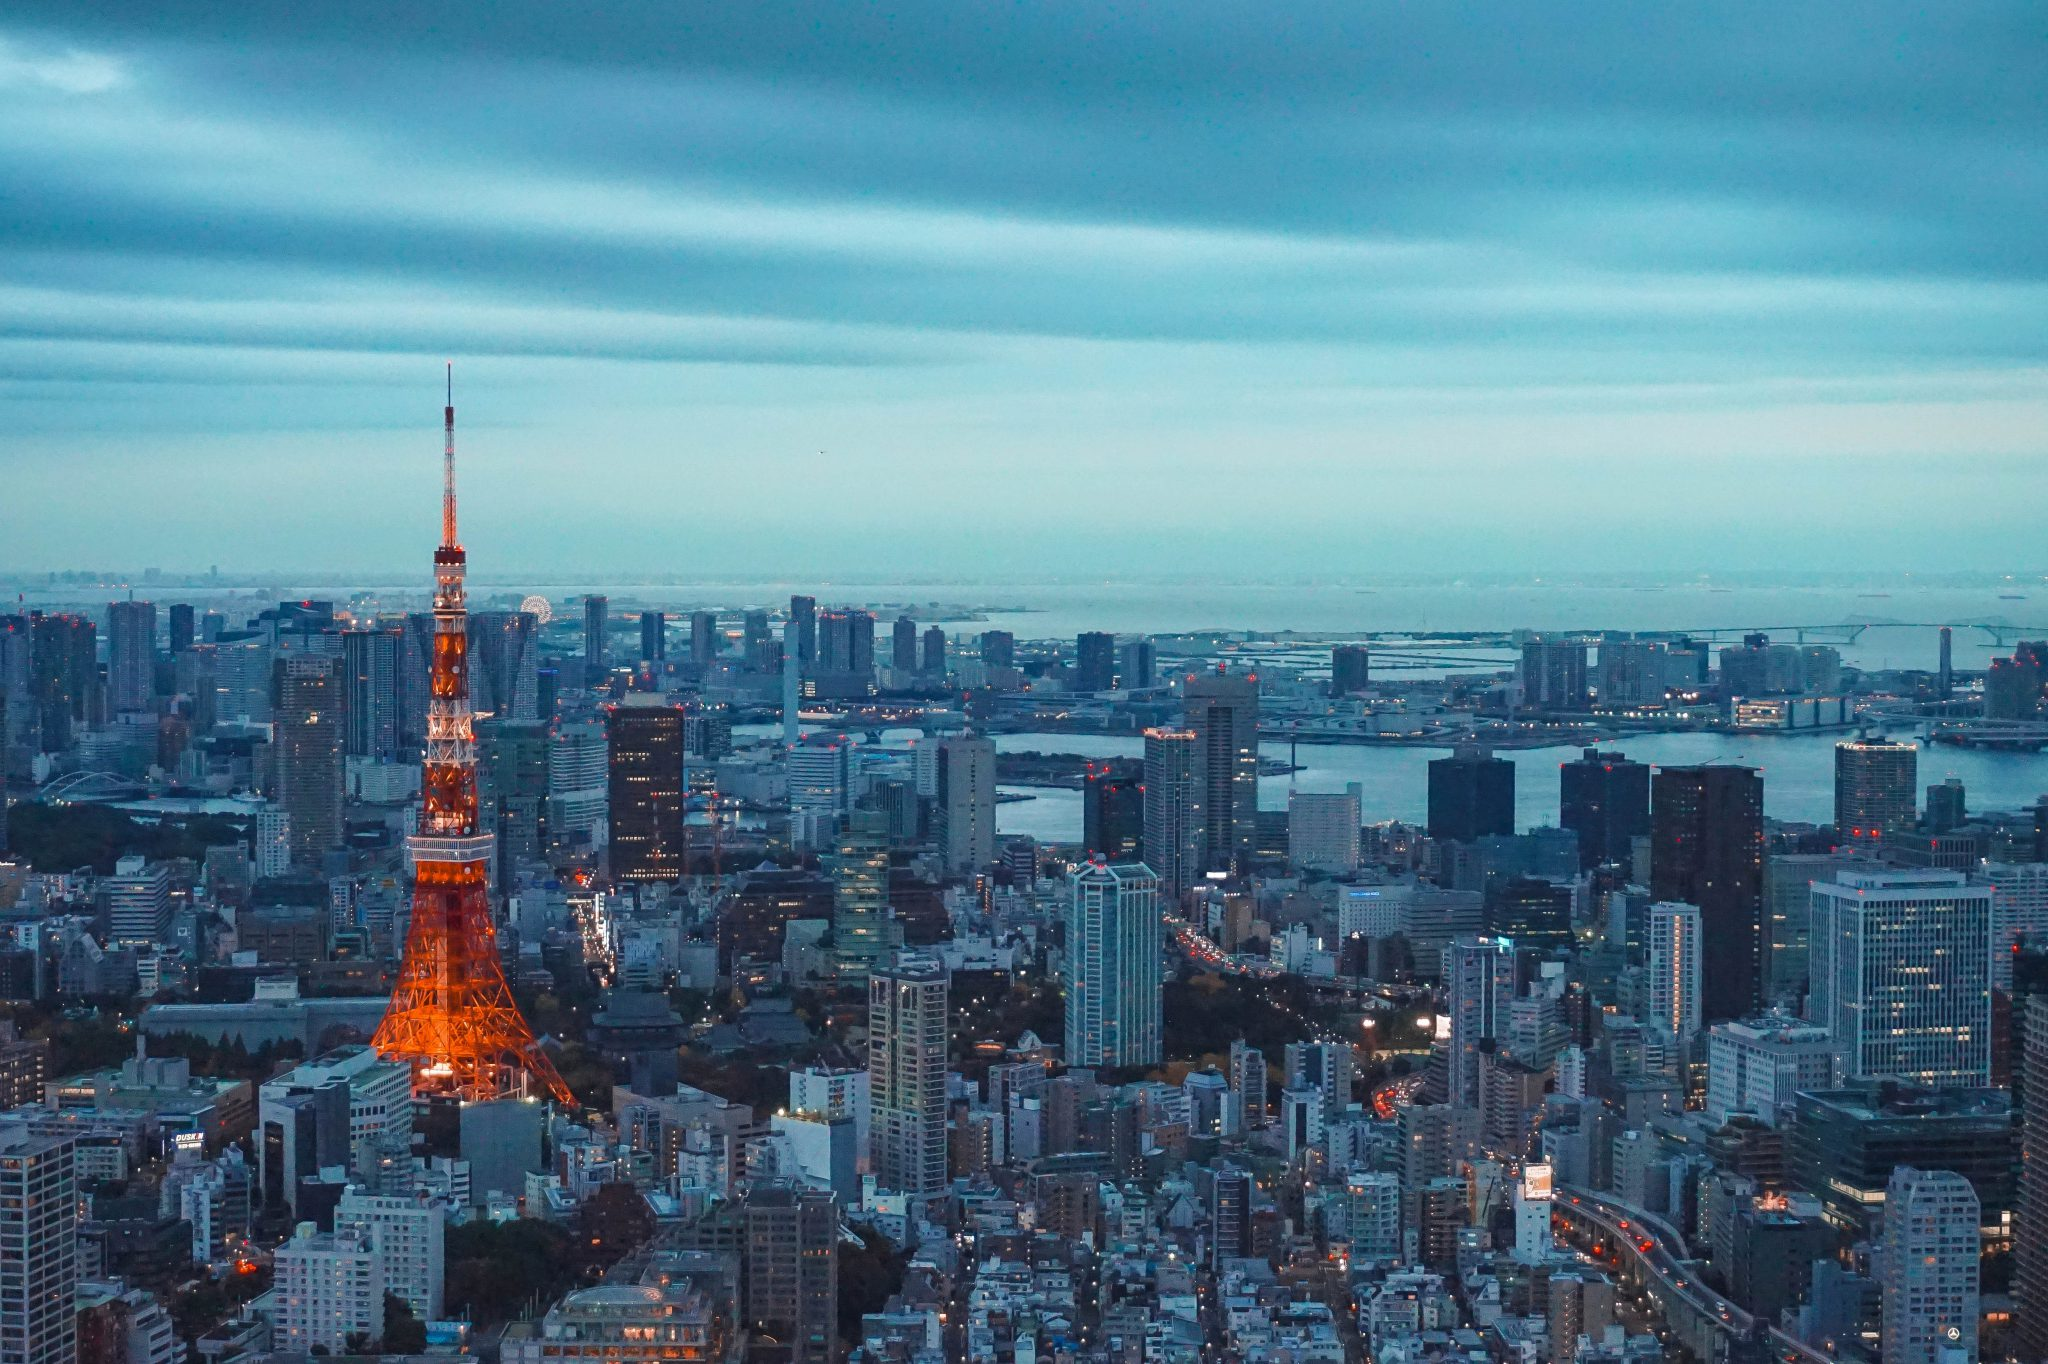 Tokyo, Japan city with tokyo tower